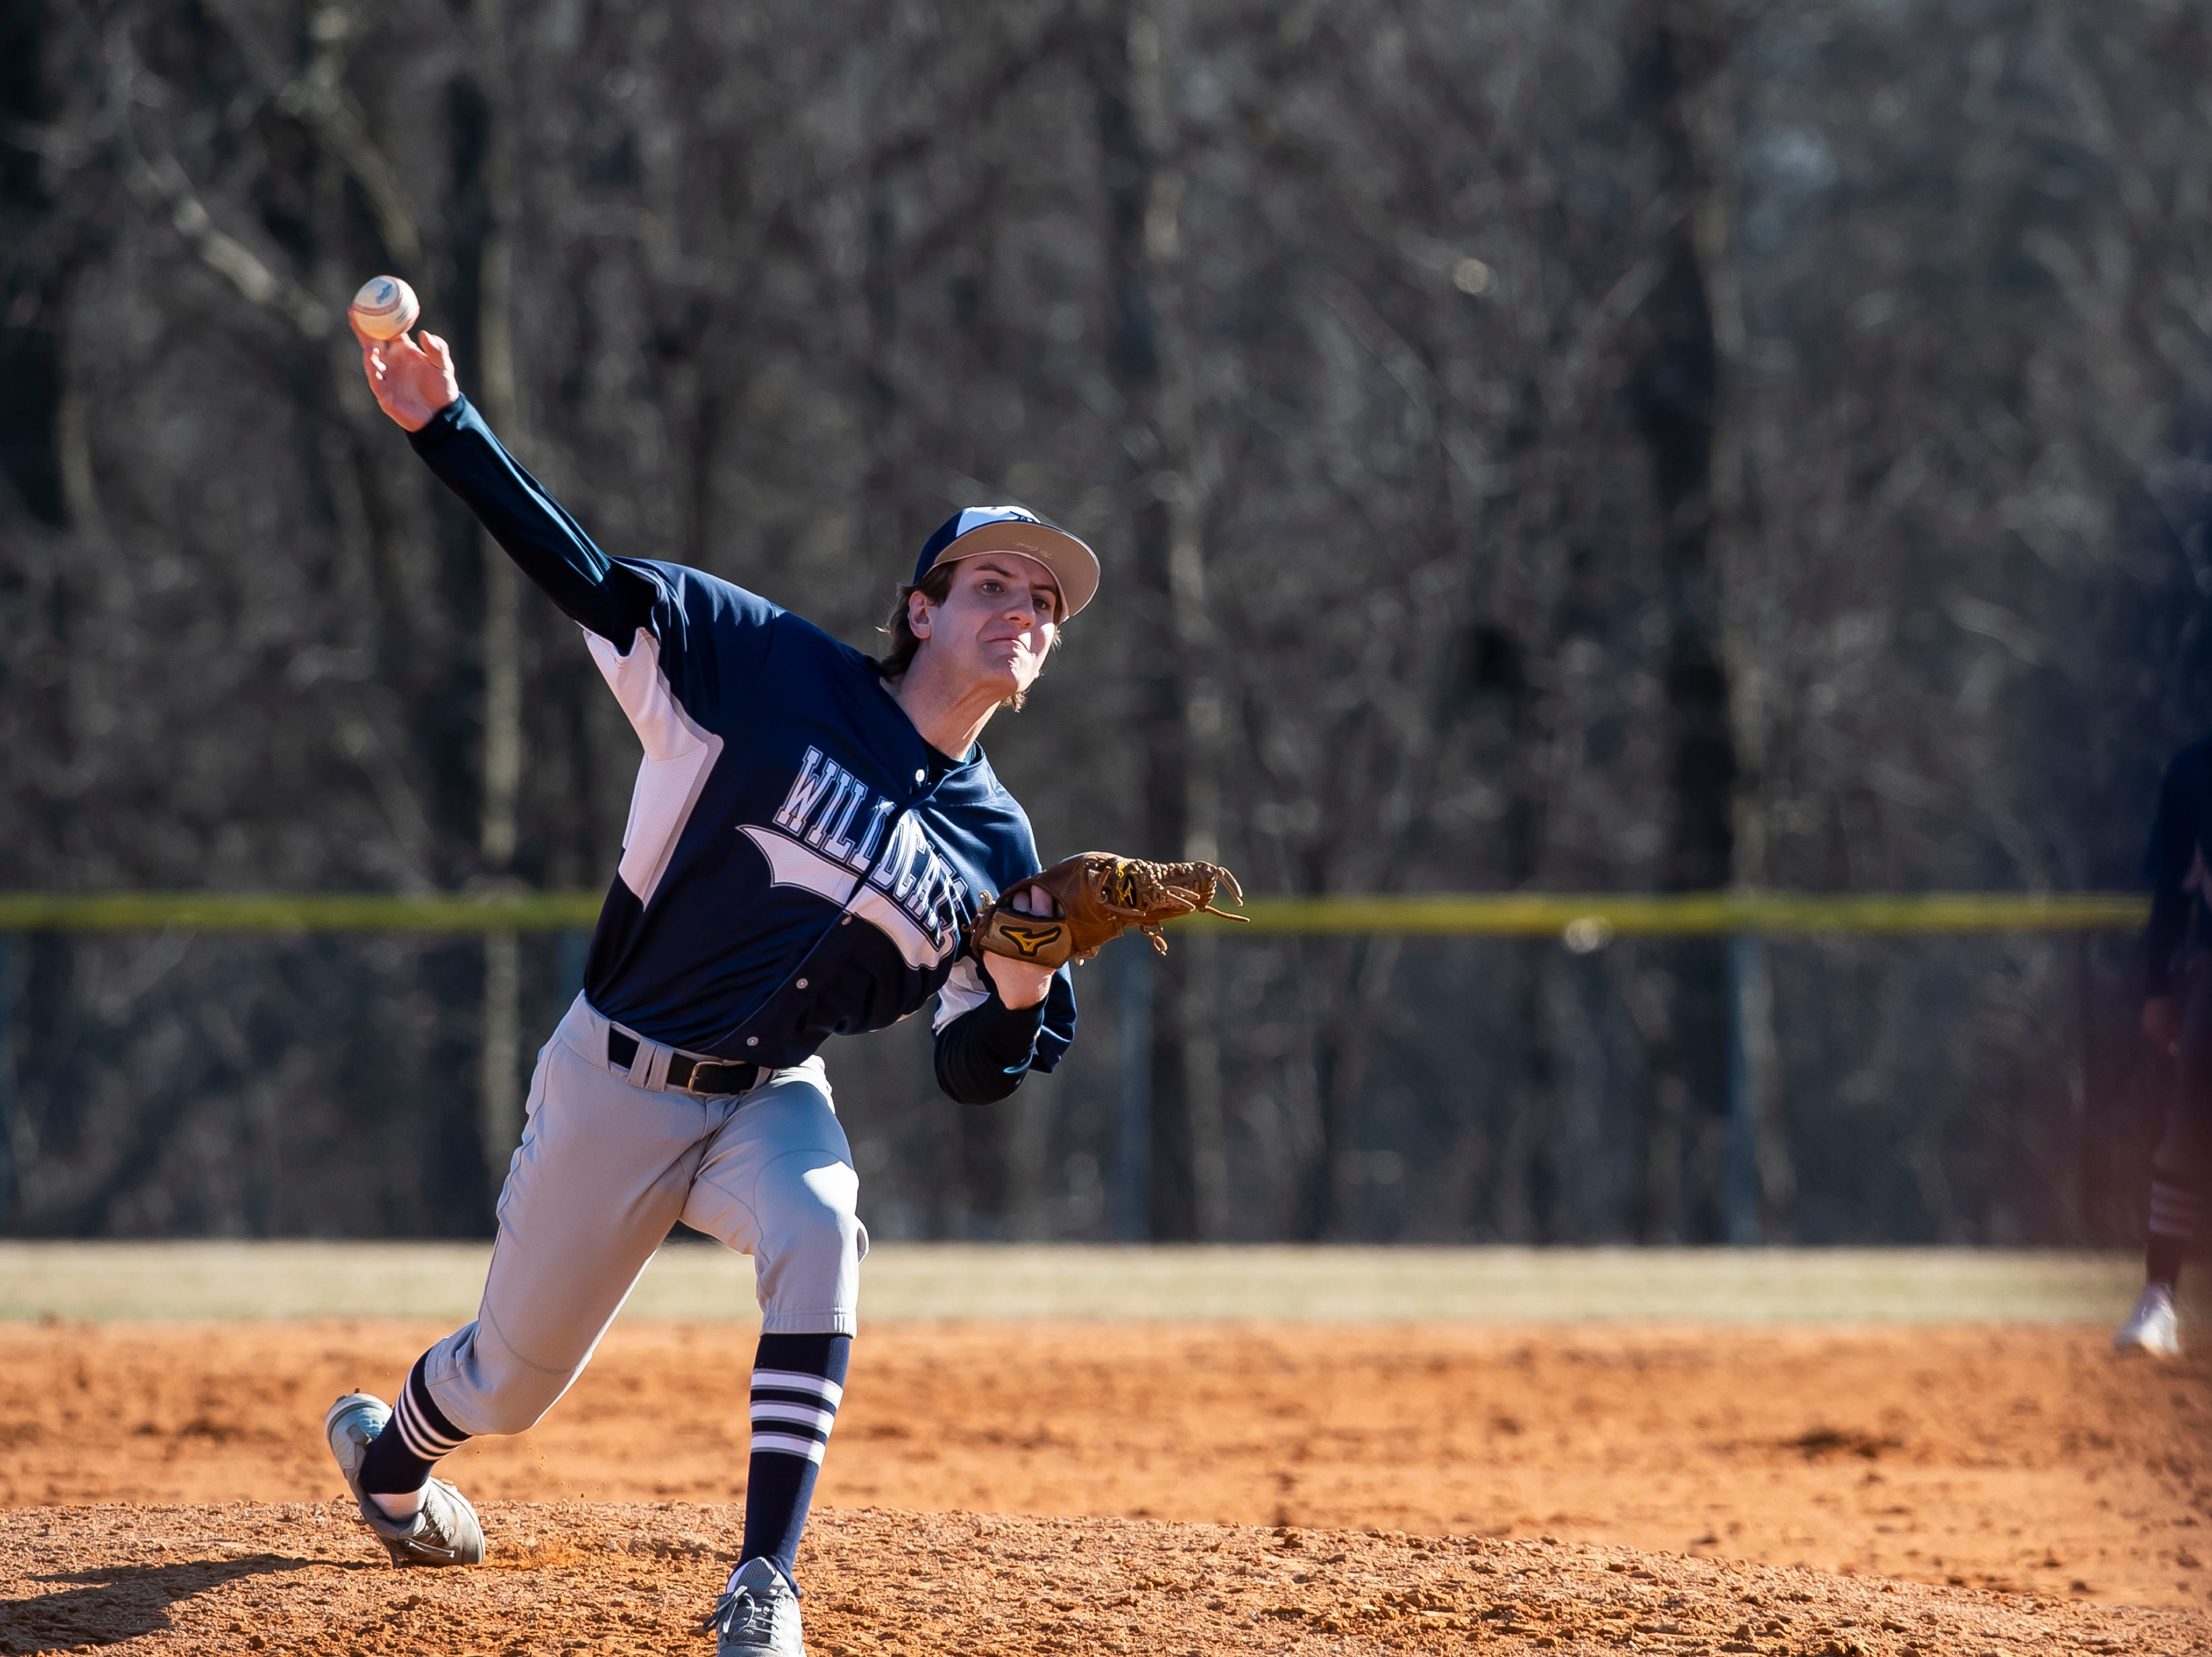 Dallastown's Morgan Smith pitches to Gettysburg during a YAIAA baseball game on Wednesday, March 27, 2019.